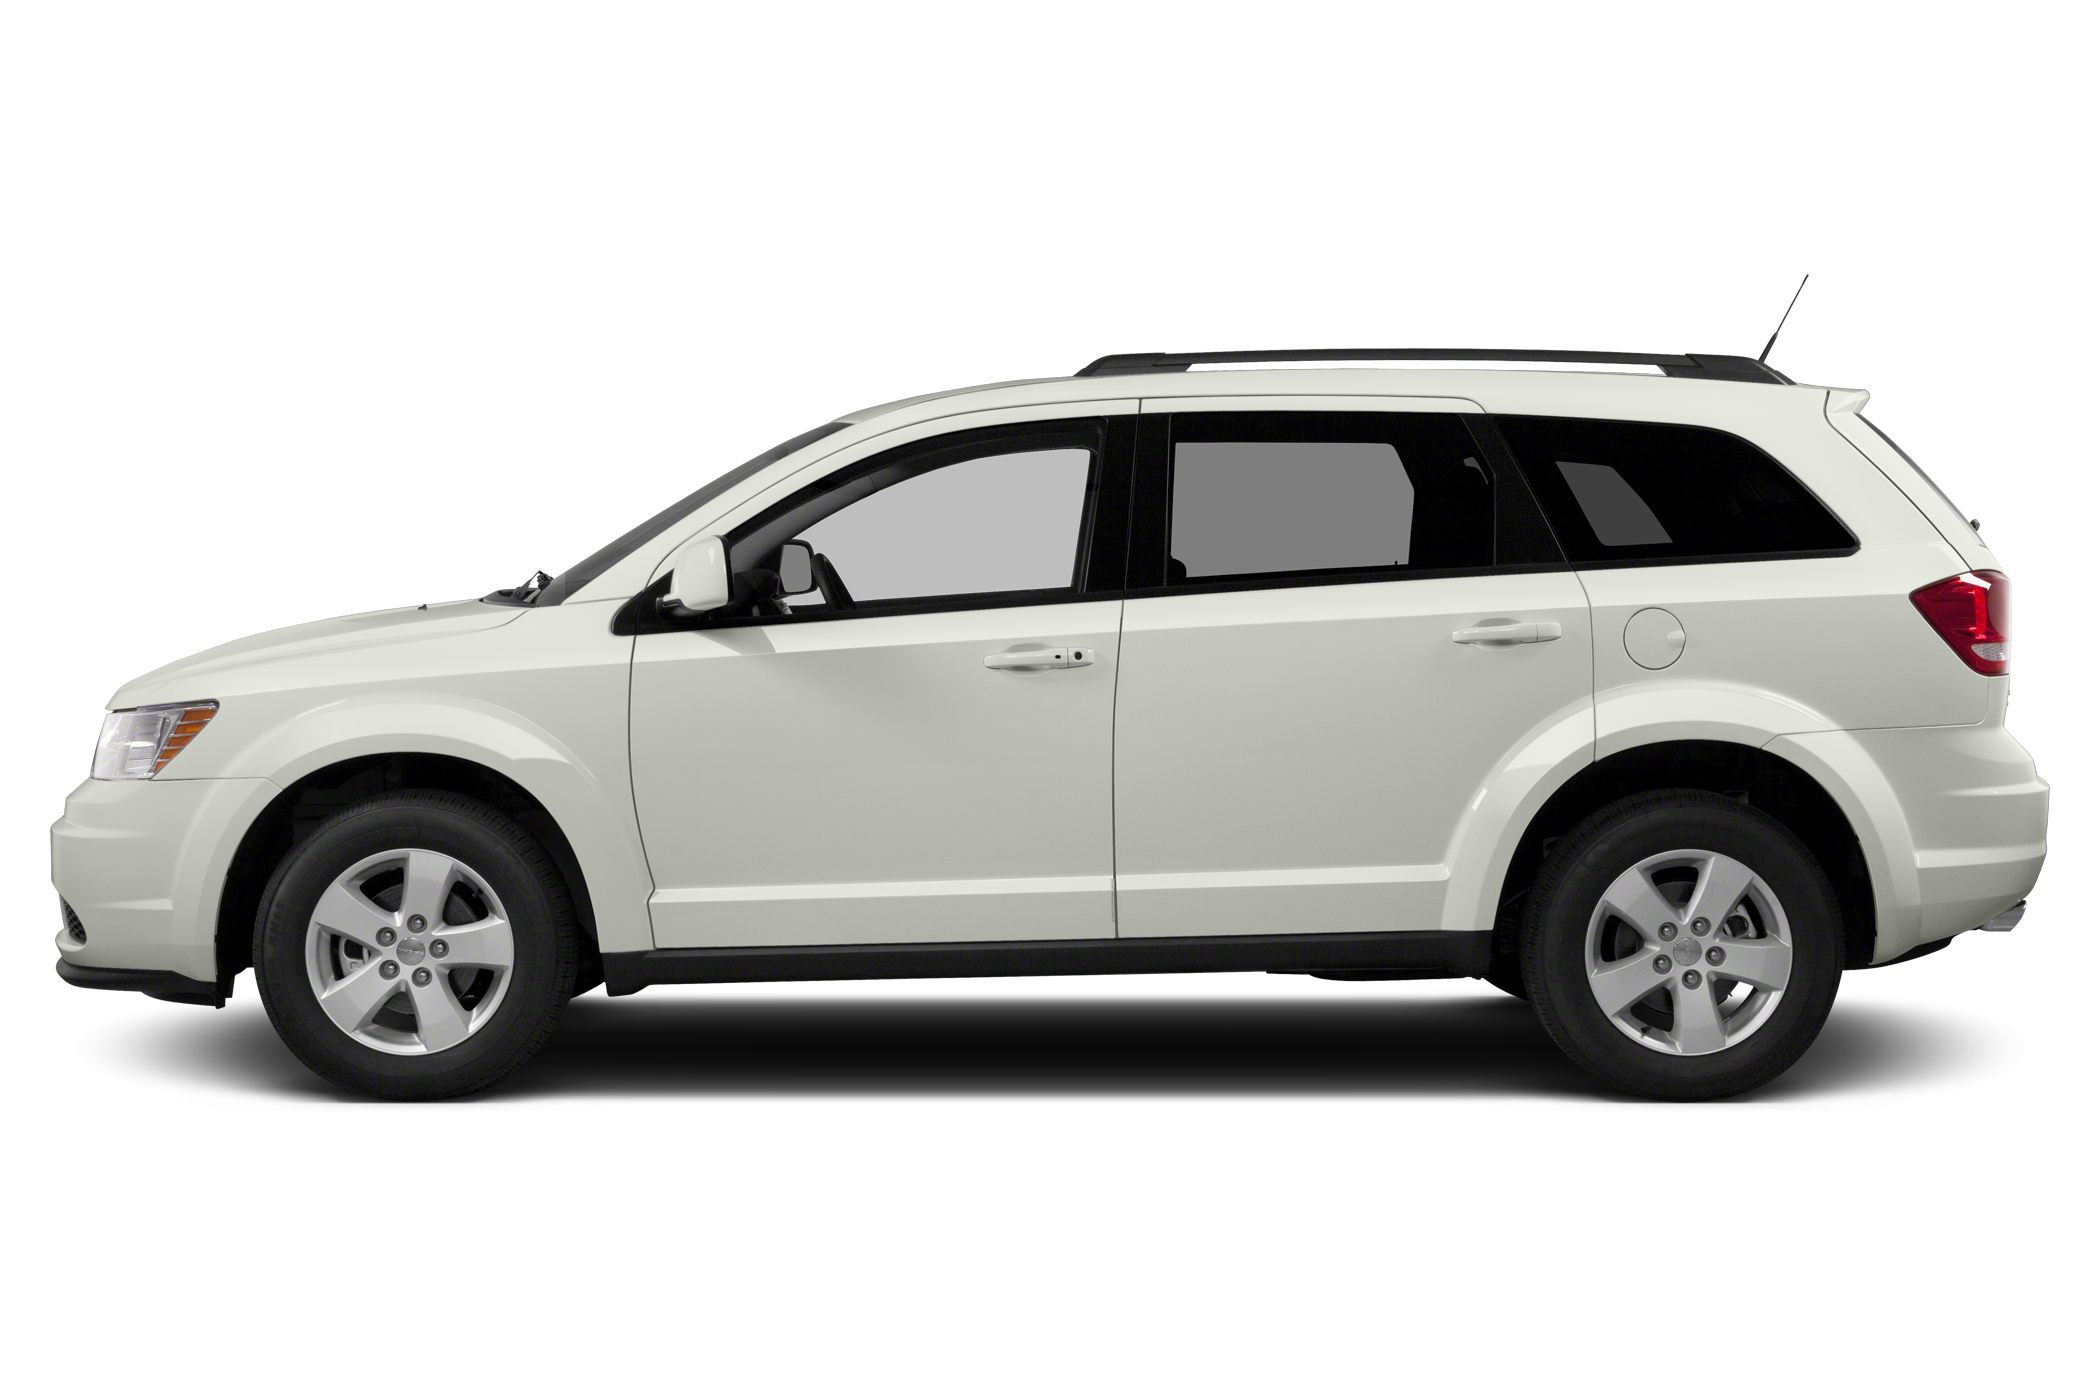 2014 dodge journey - information and photos - zombiedrive